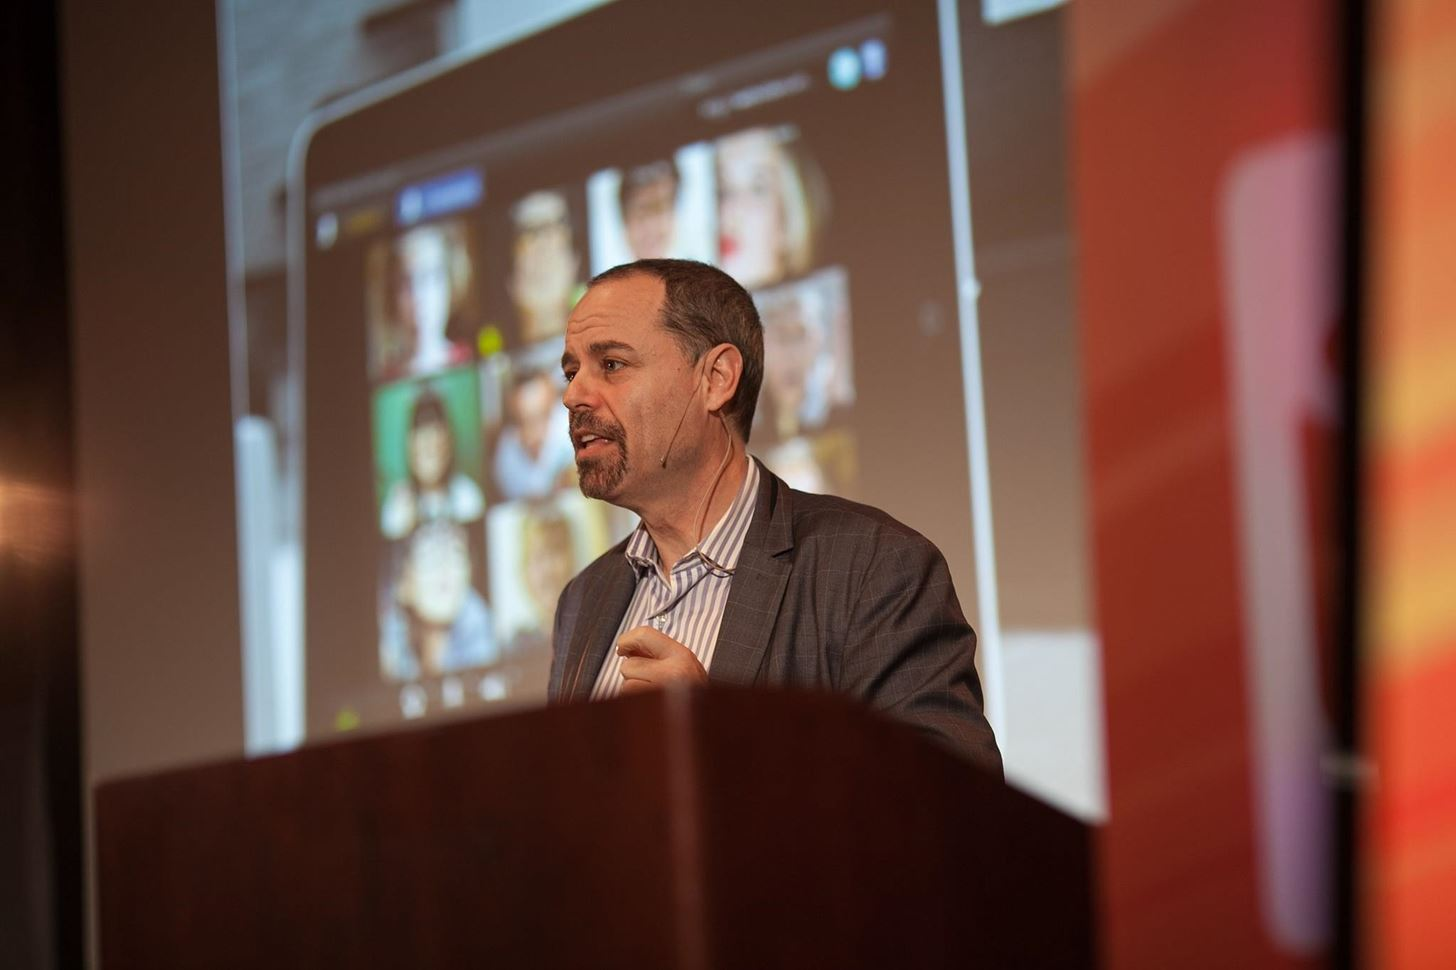 Q&A with Jay Samit: The Future of AR Could Be a World of 'Times Square on Acid'